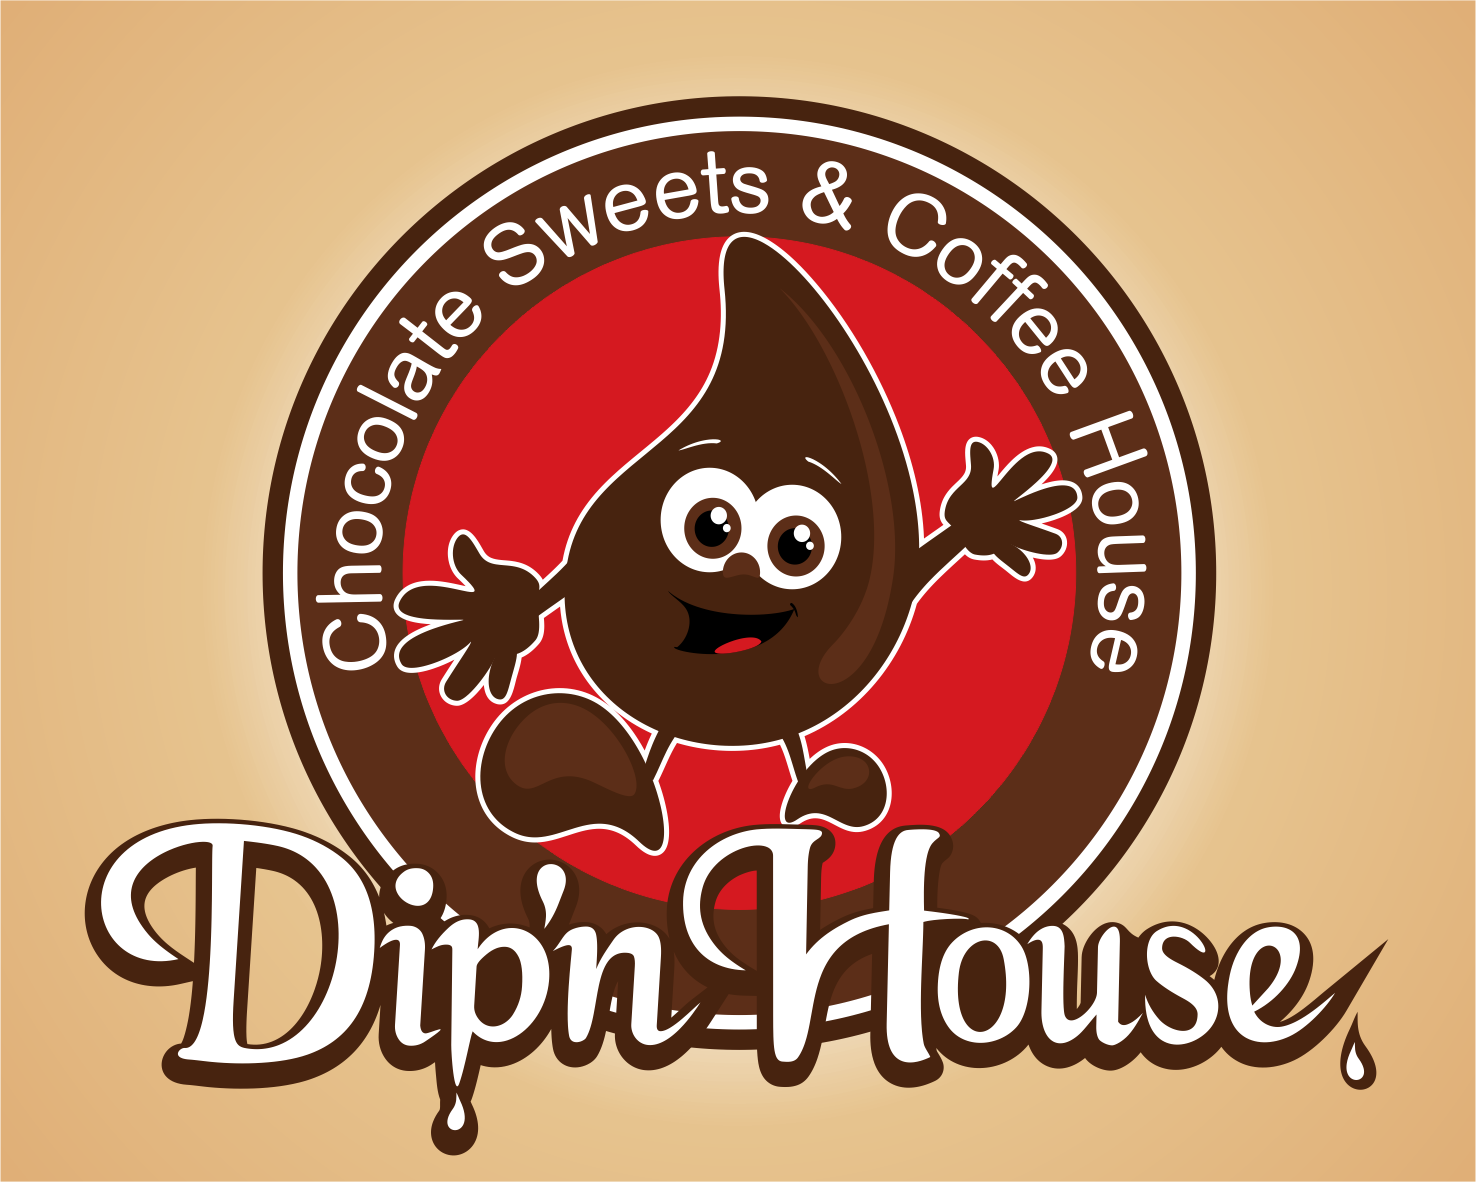 Create the next logo for Dip'n House